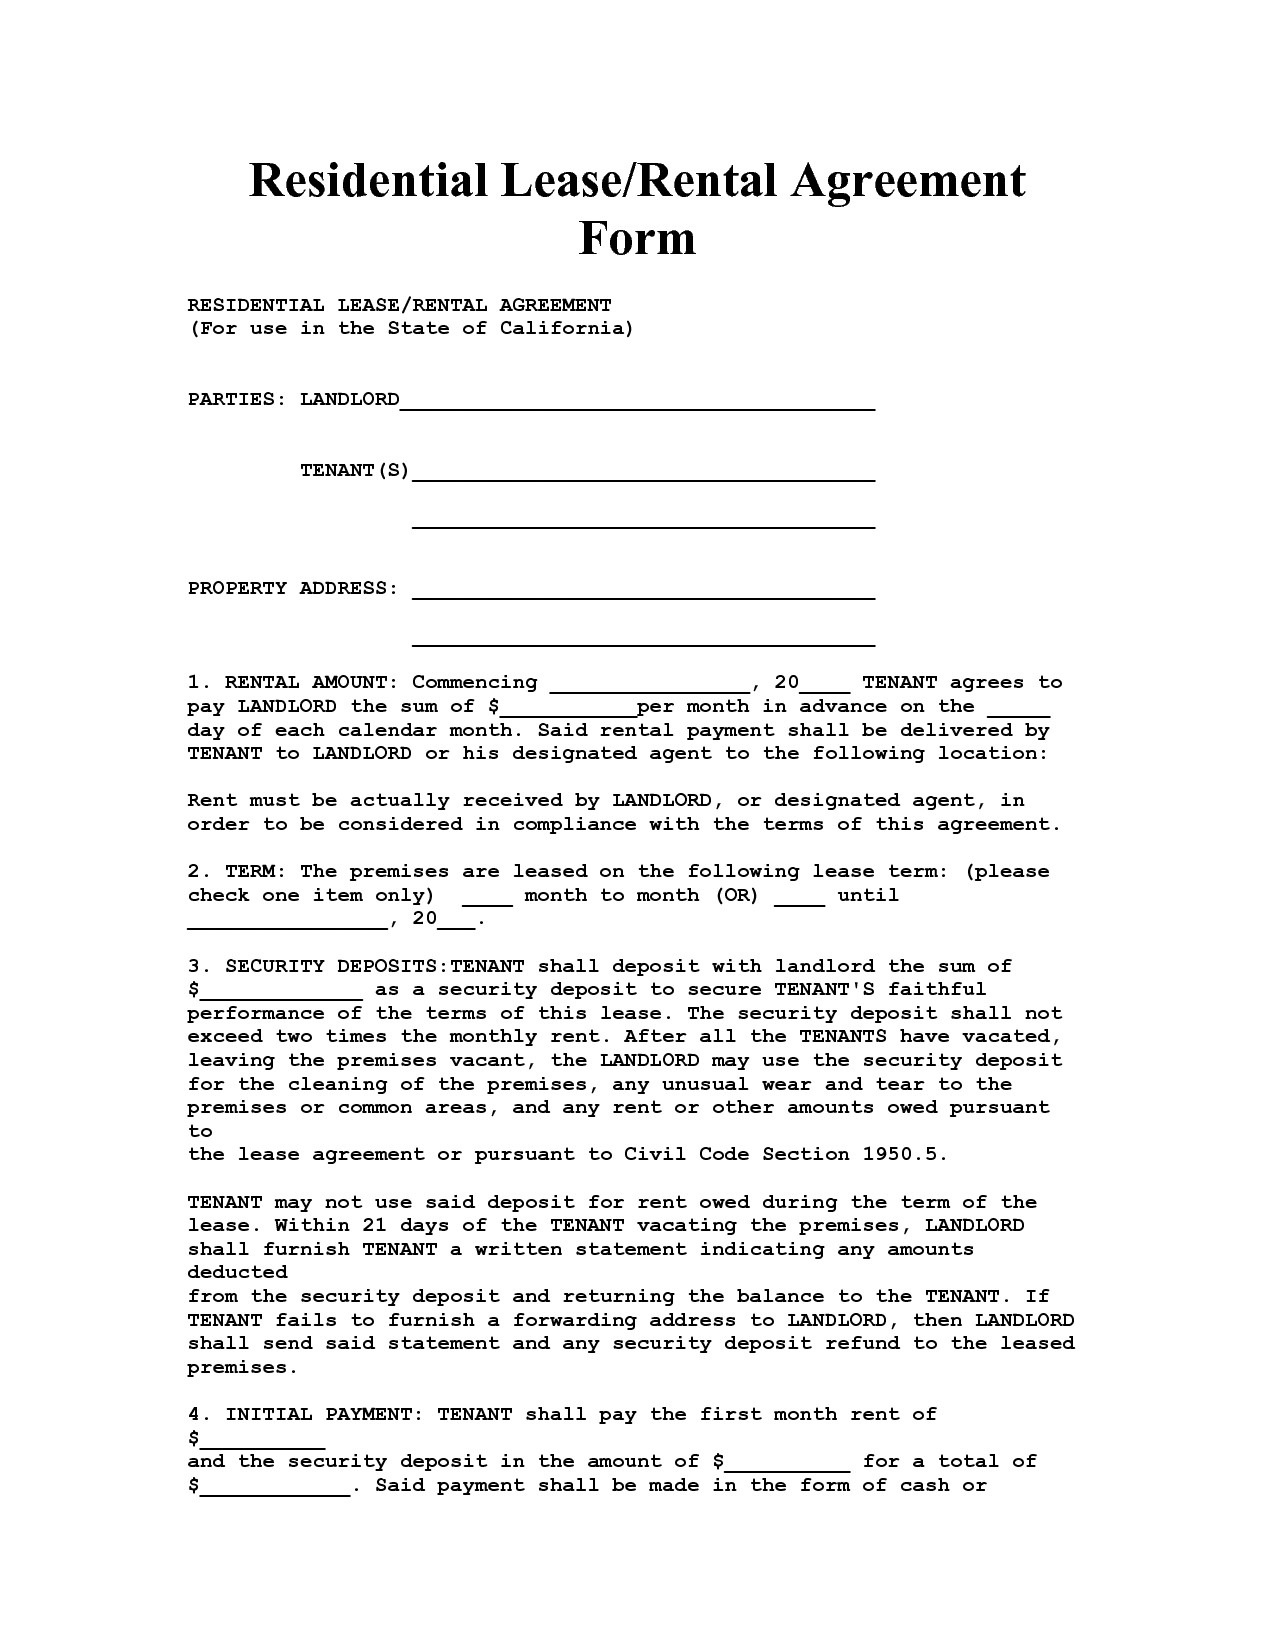 Residential Lease Agreement Form Pdf Fresh Lease Agreement Ca Illinois Residential Lease Agreement Pdf